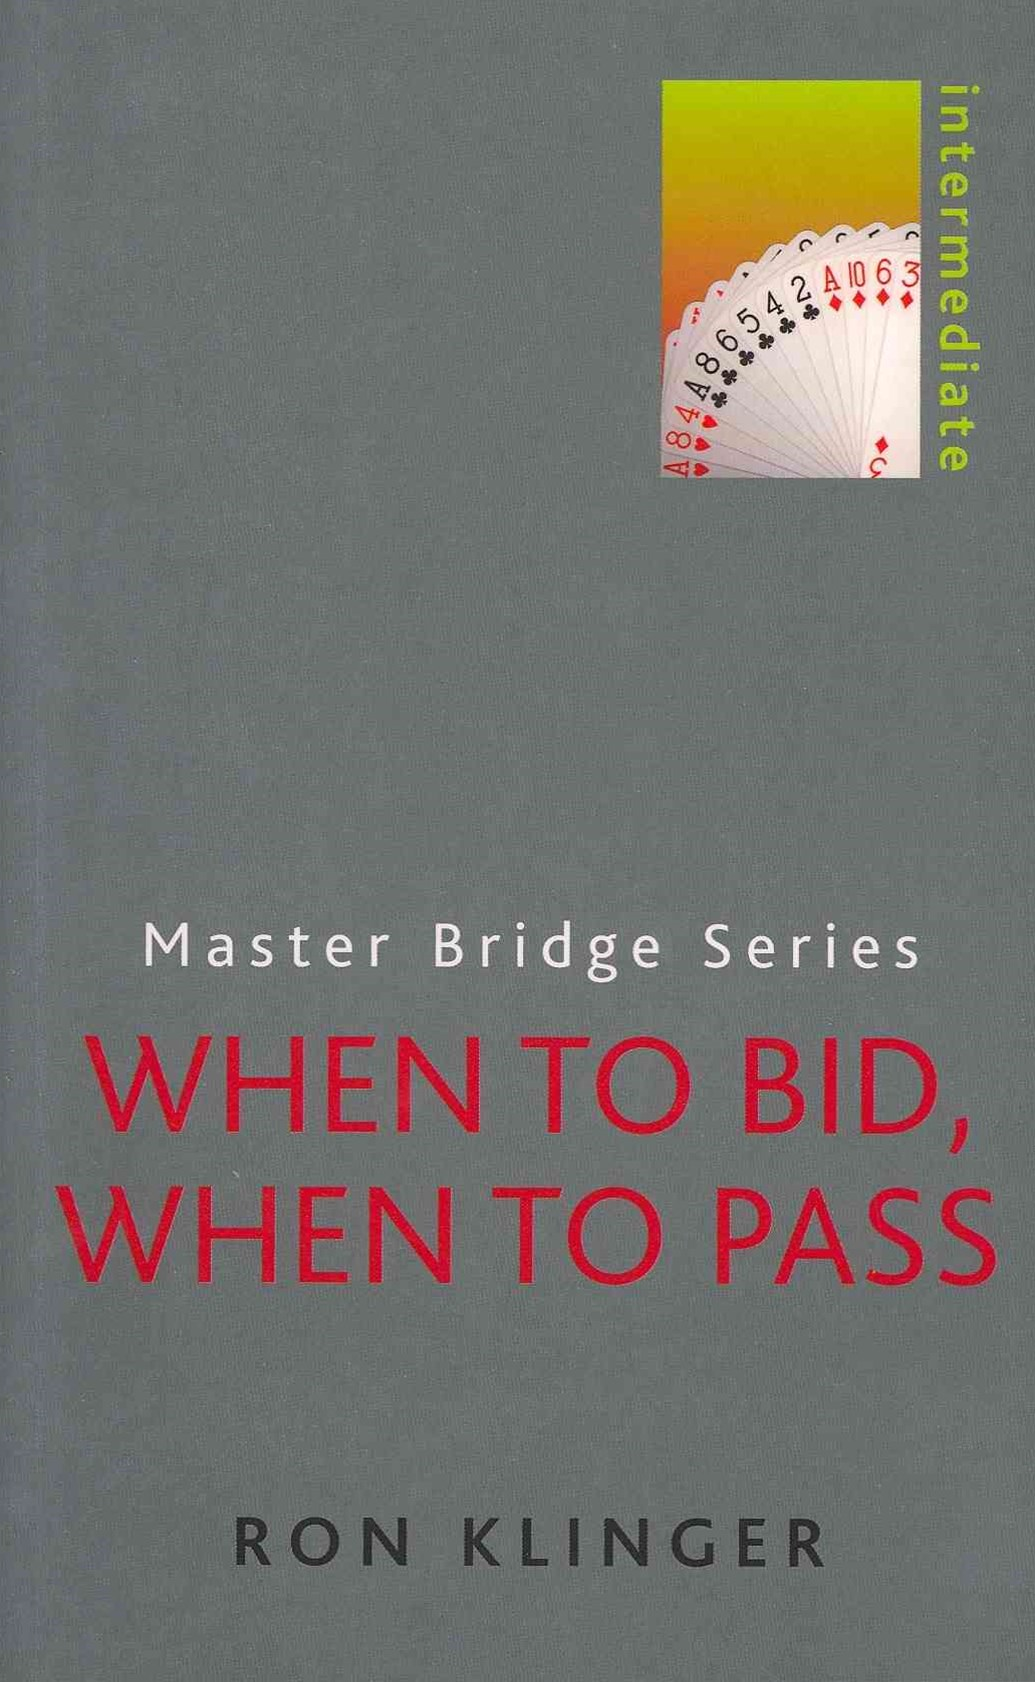 When to Bid, When to Pass